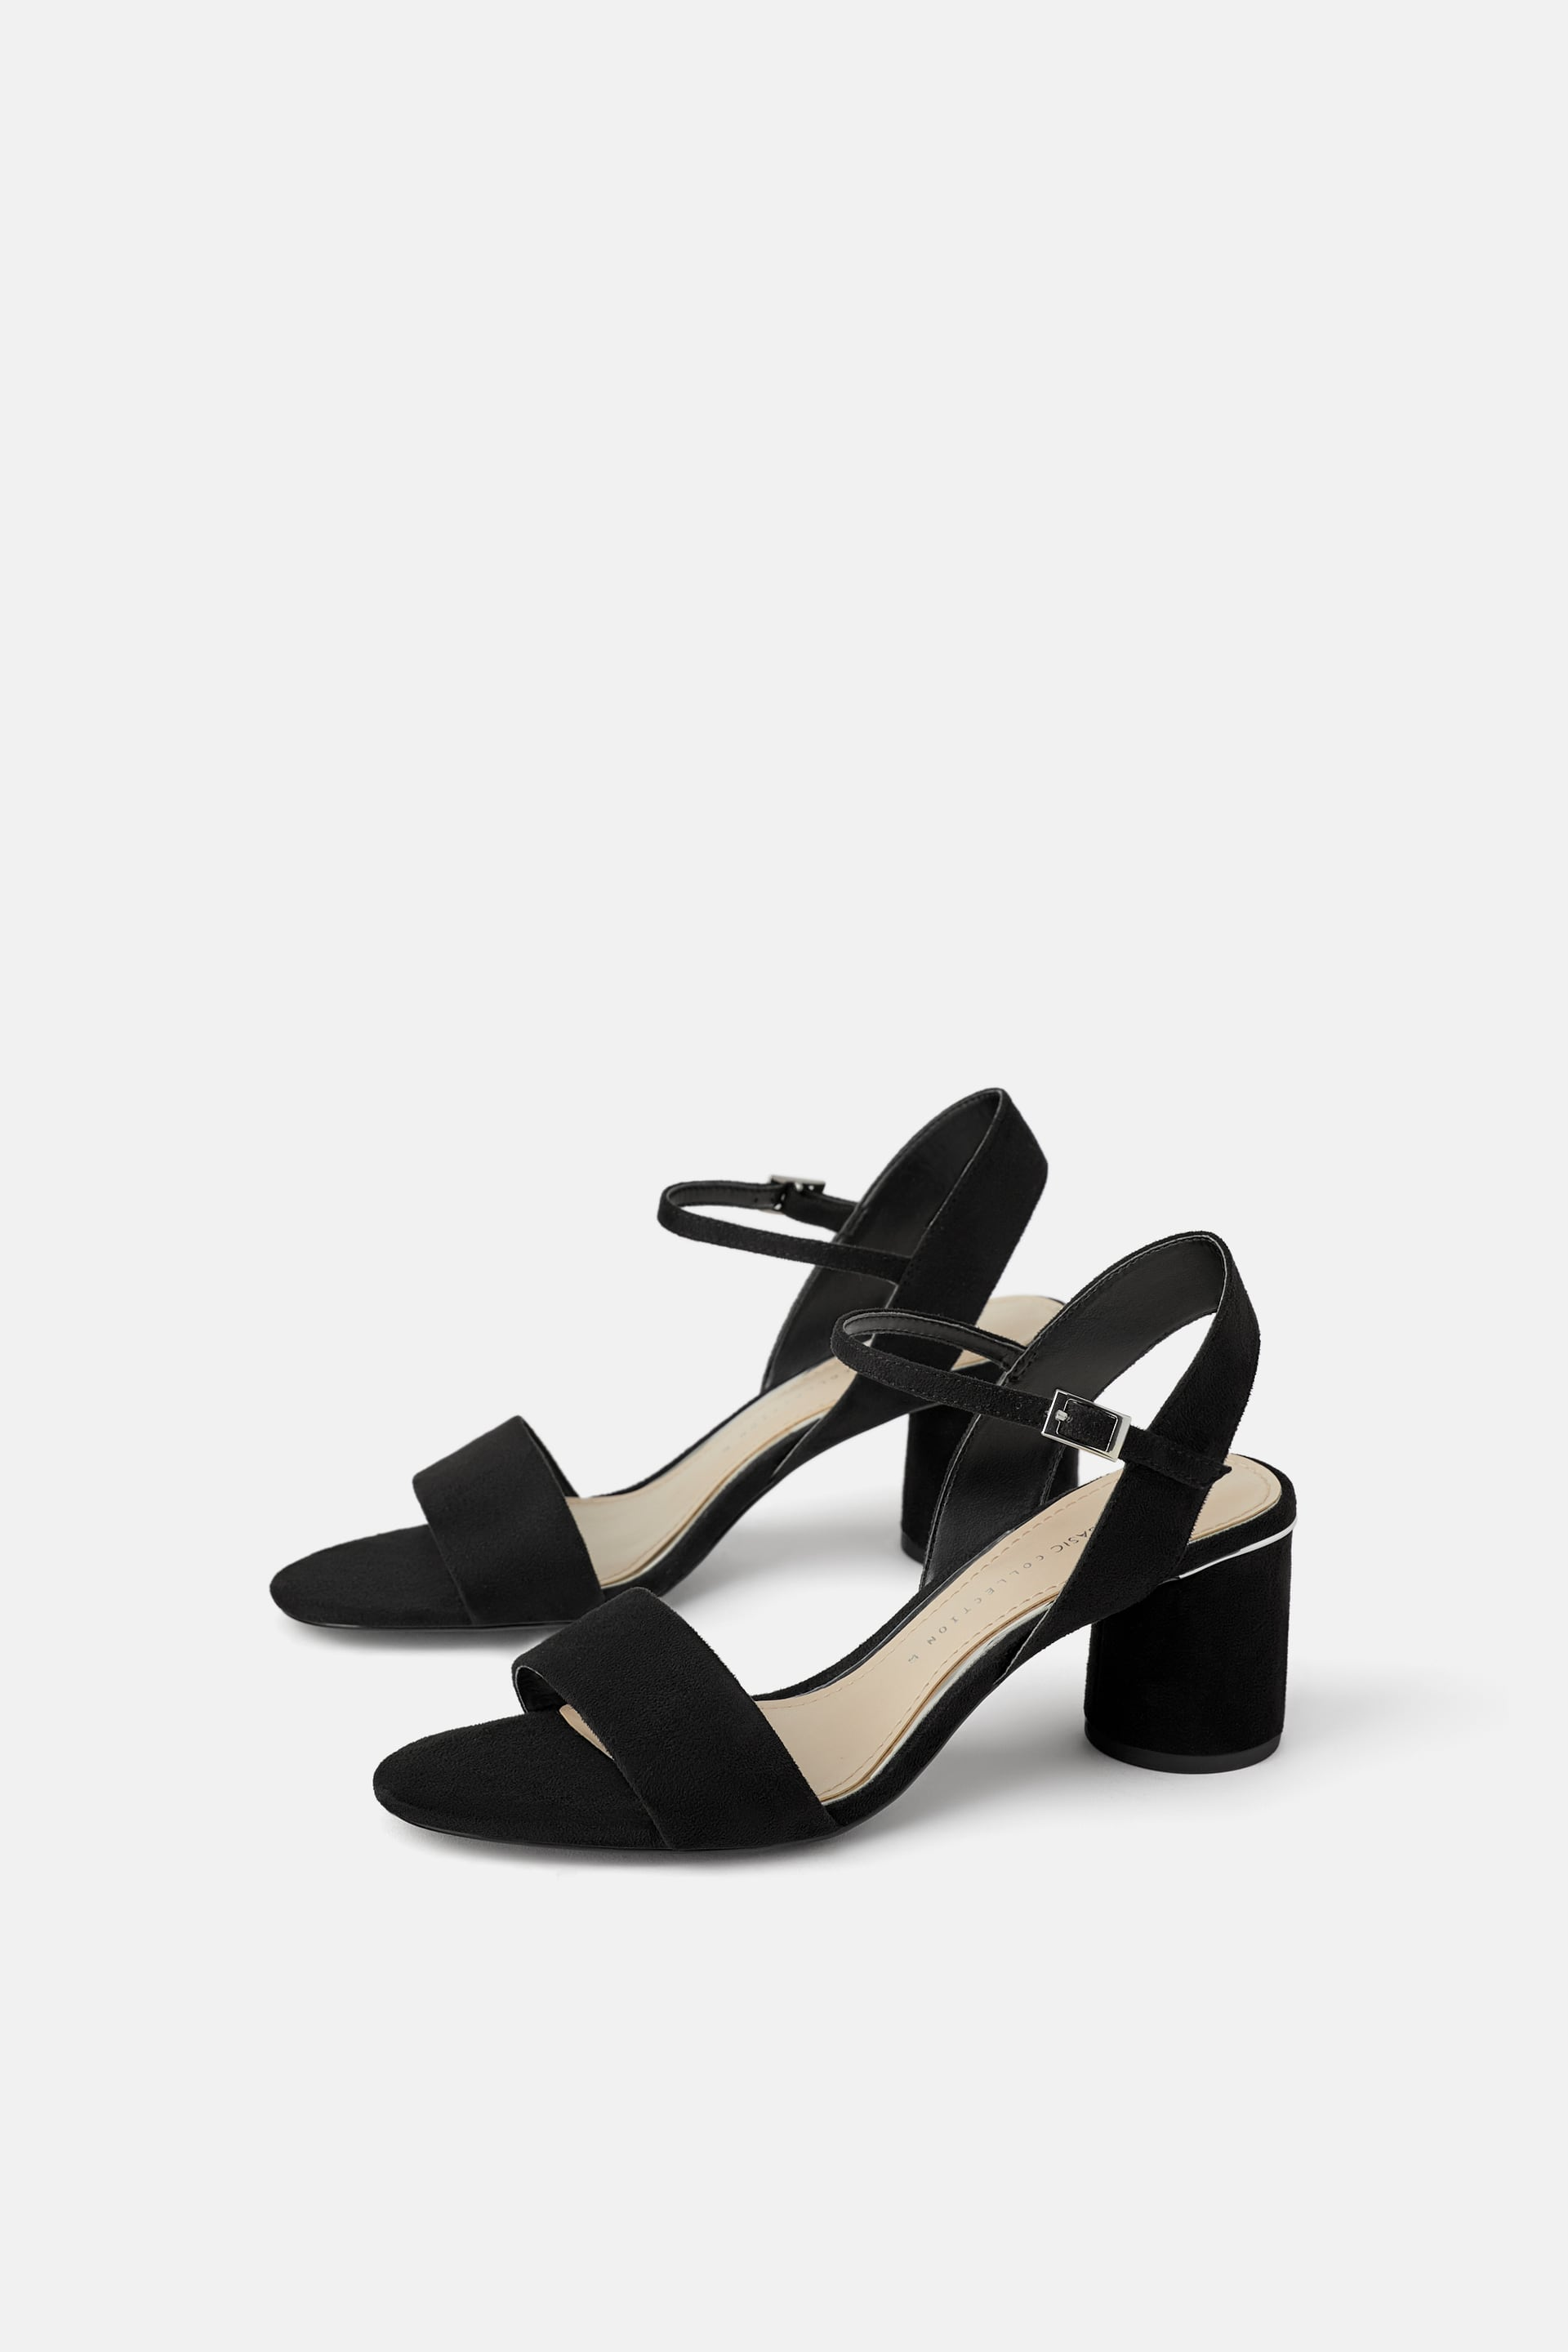 Round Wide Heeled Sandals View All Shoes Woman by Zara